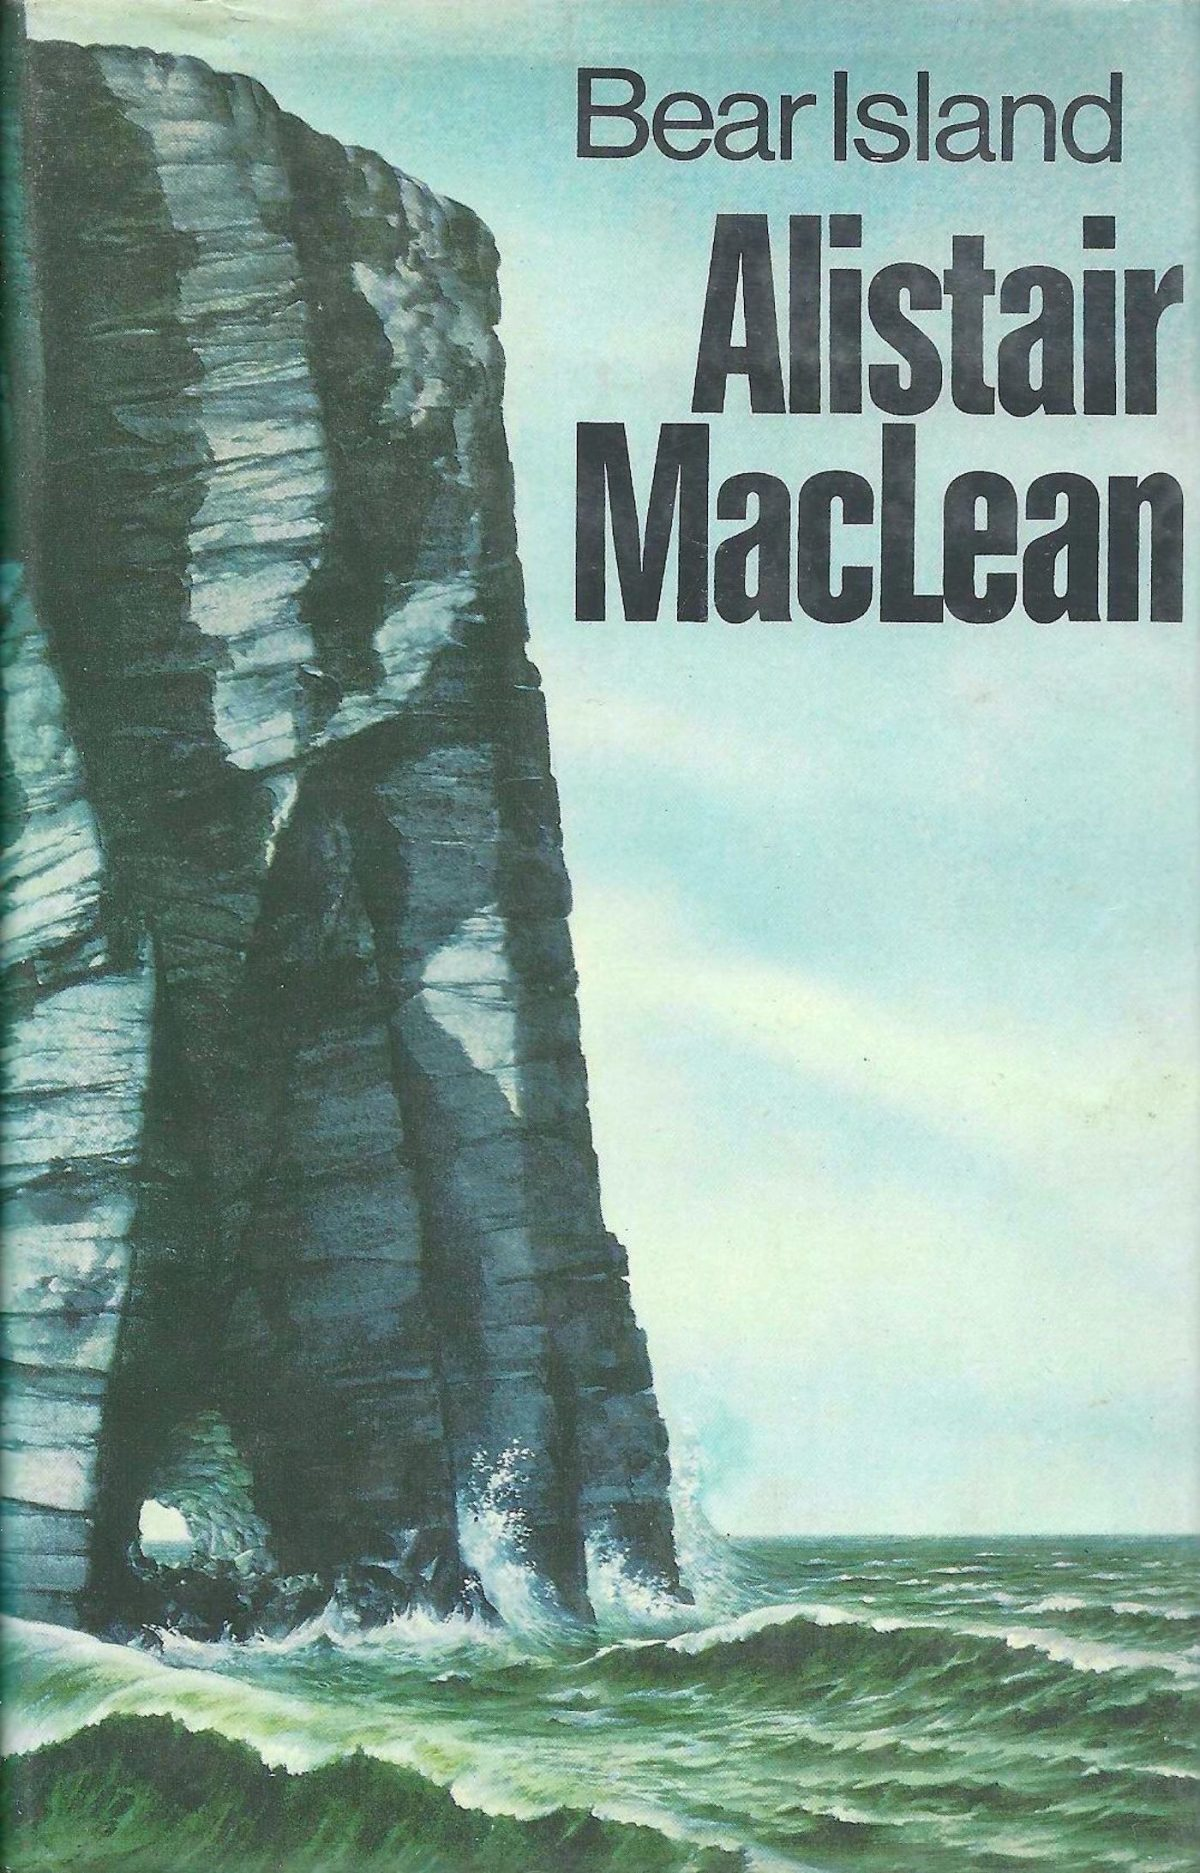 Alistair MacLean, Bear Island, book